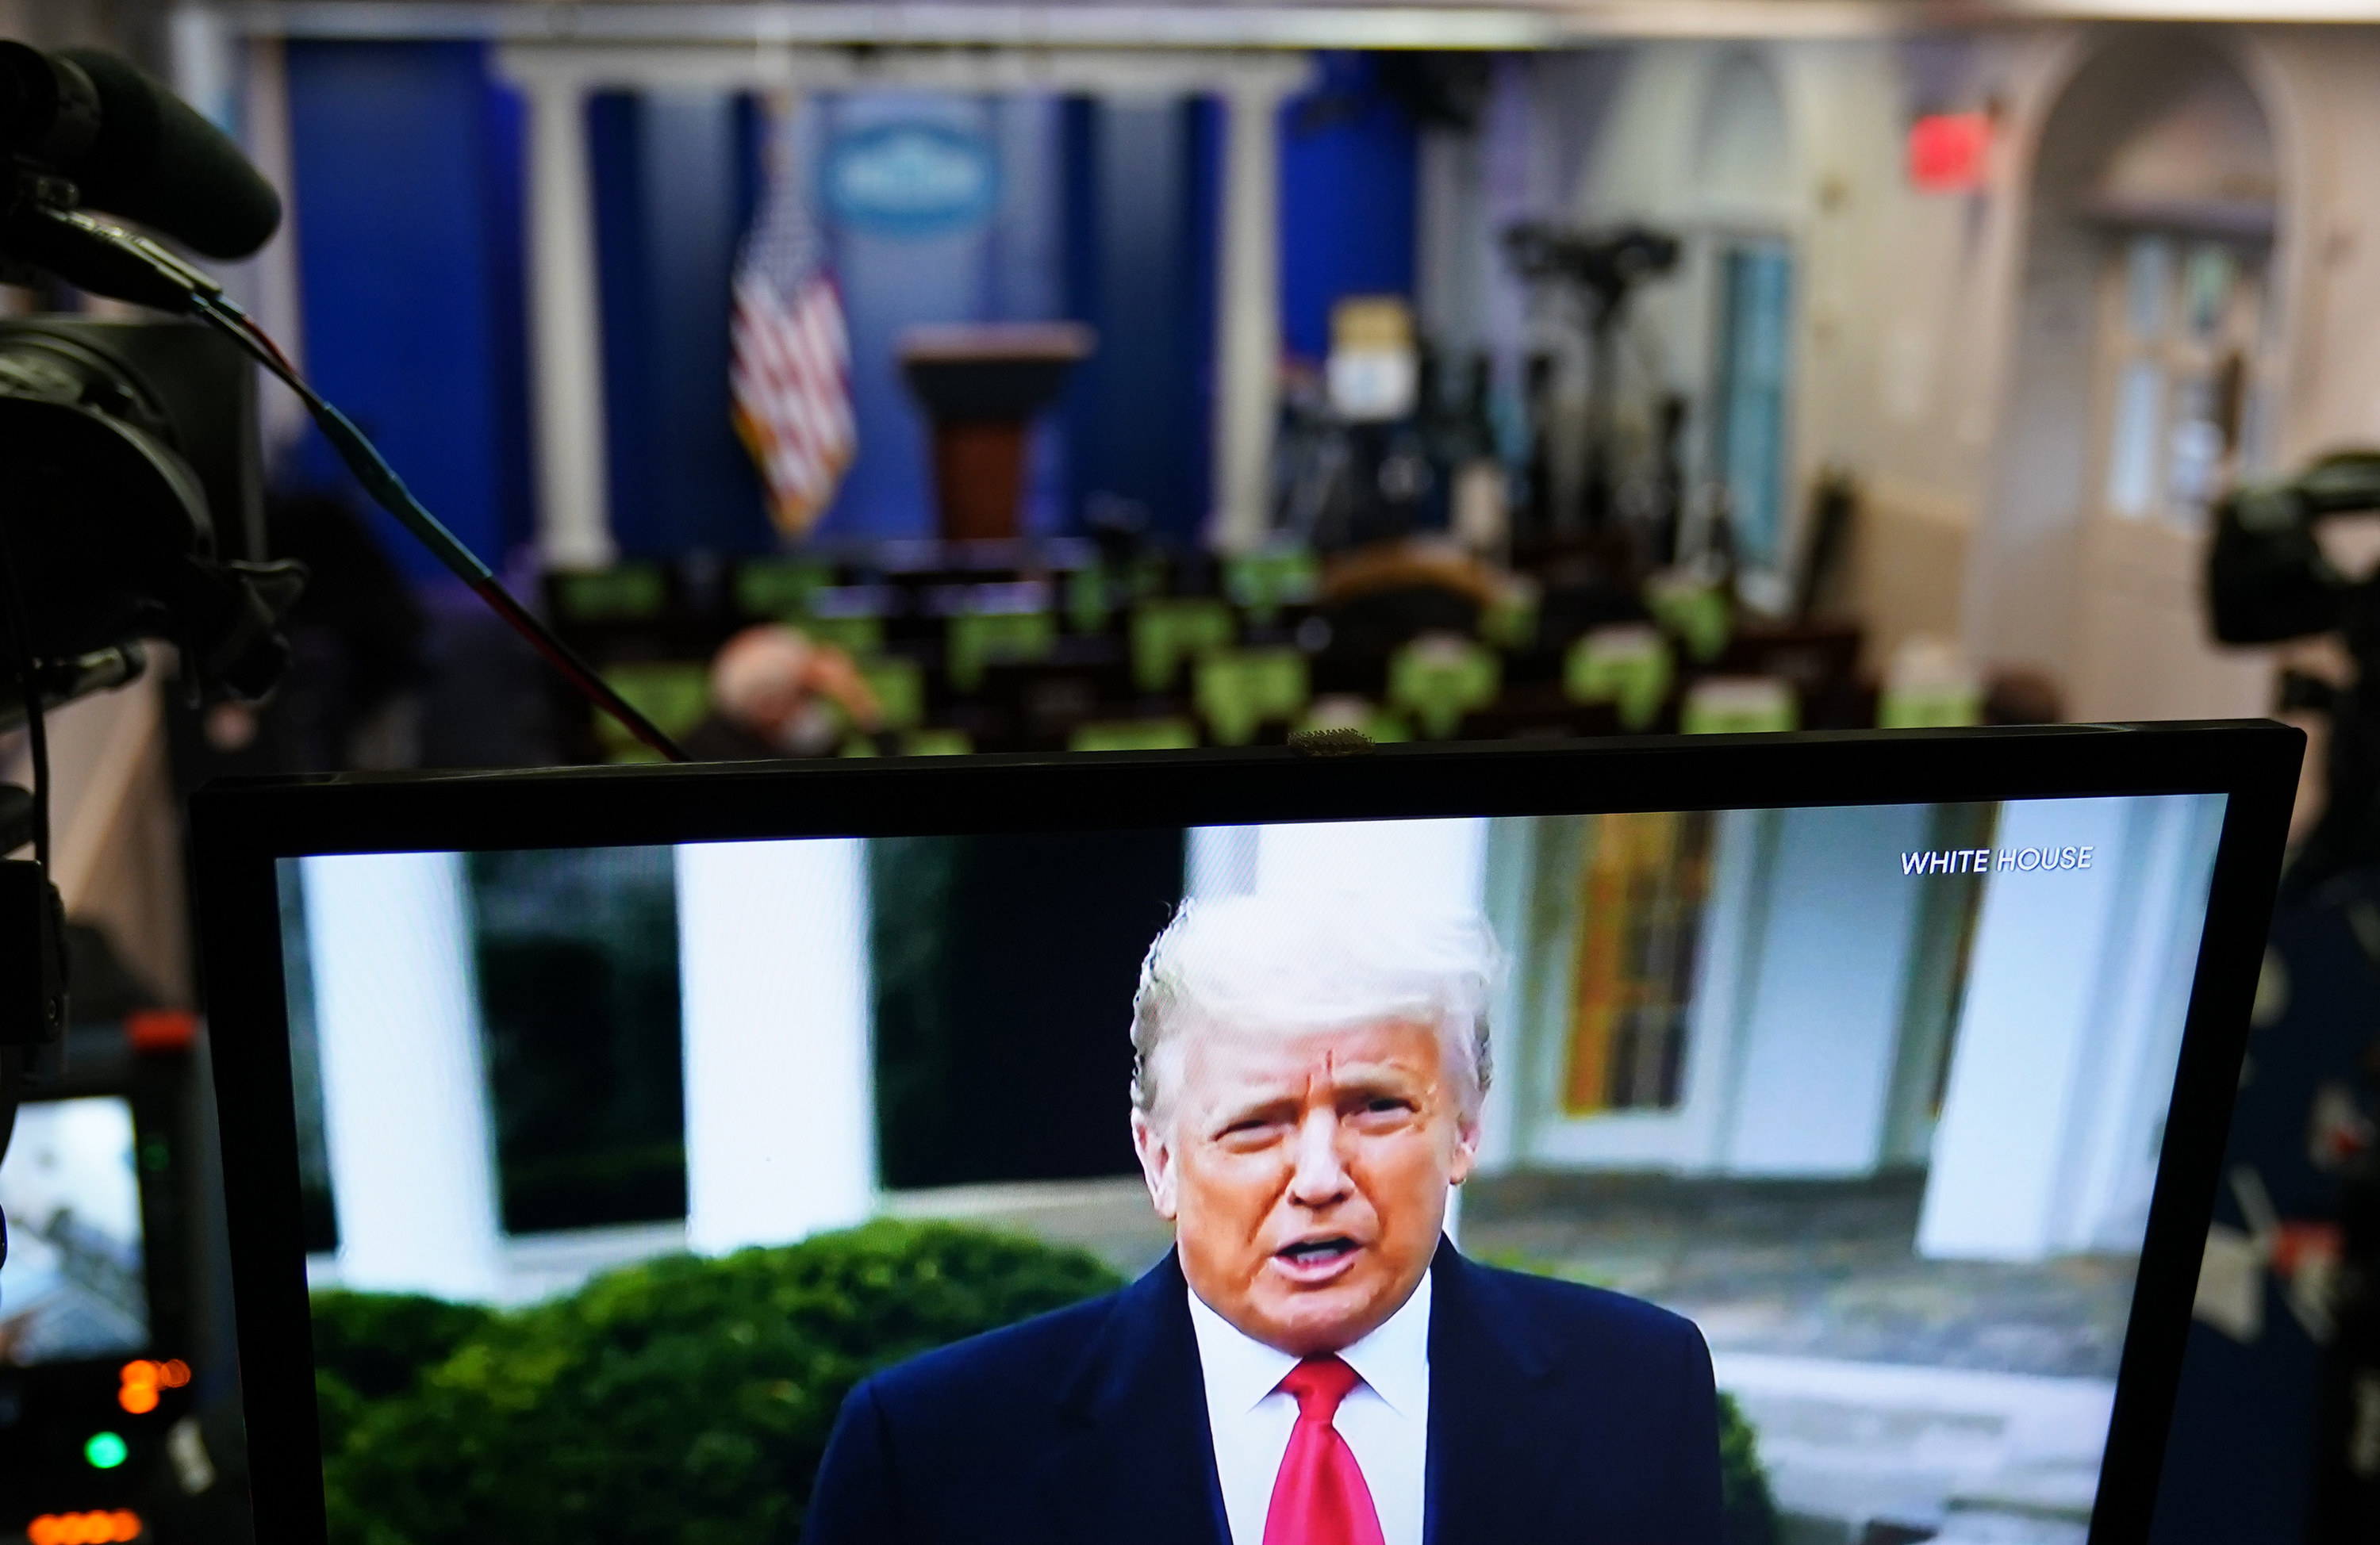 President Donald Trump is seen on a TV in the White House's press briefing room